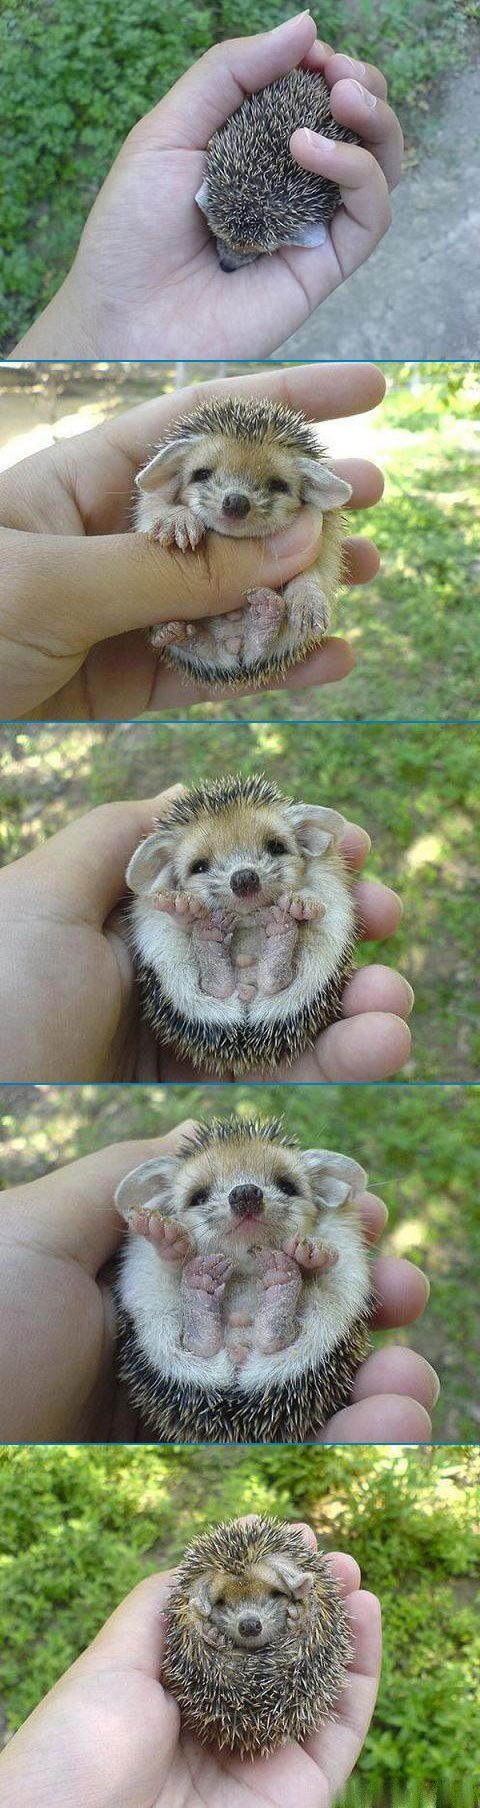 hedgehog - too cute!